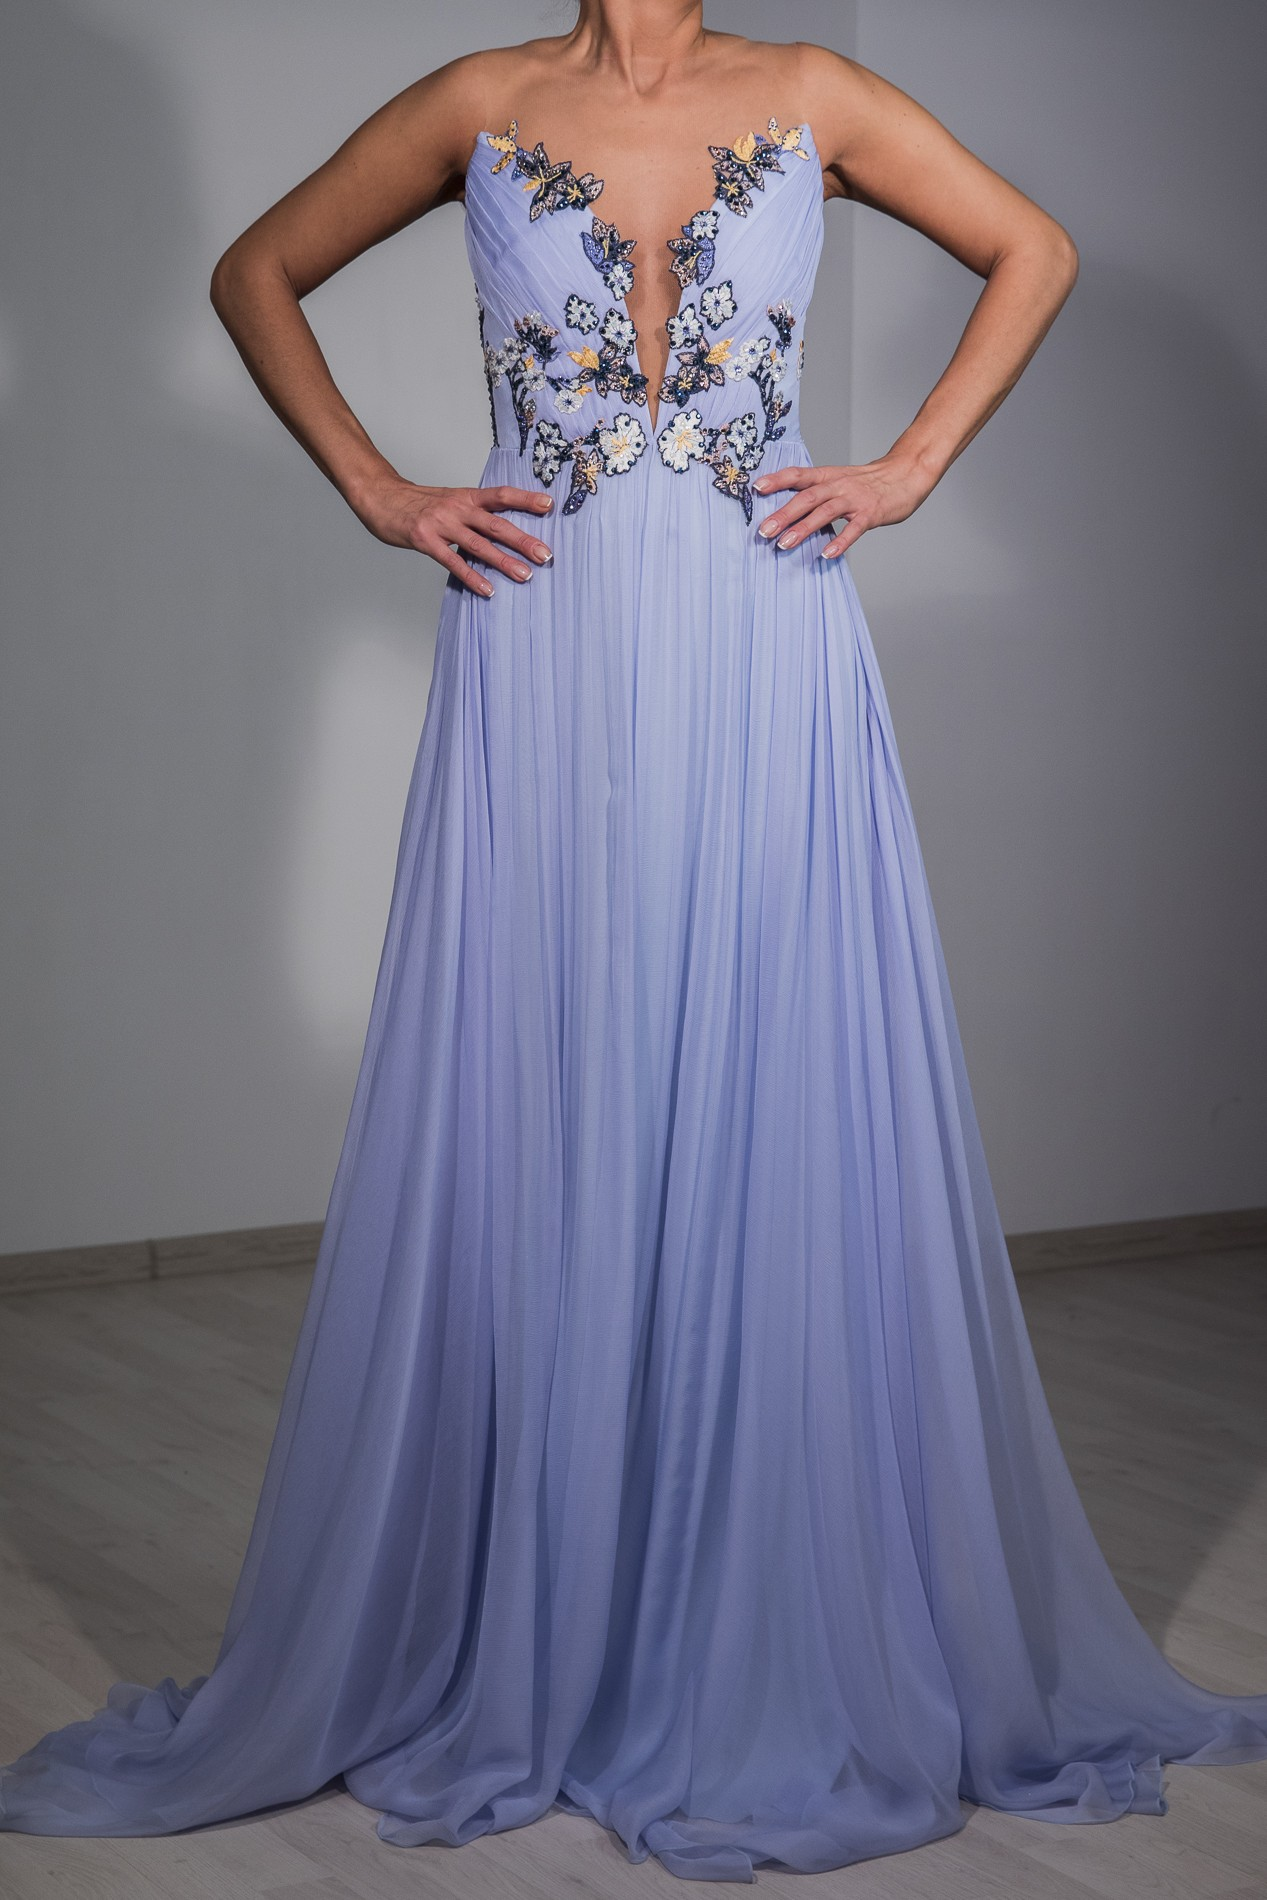 SHINY LACE AND TULLE EVENING GOWN - Rhea Costa-Shop